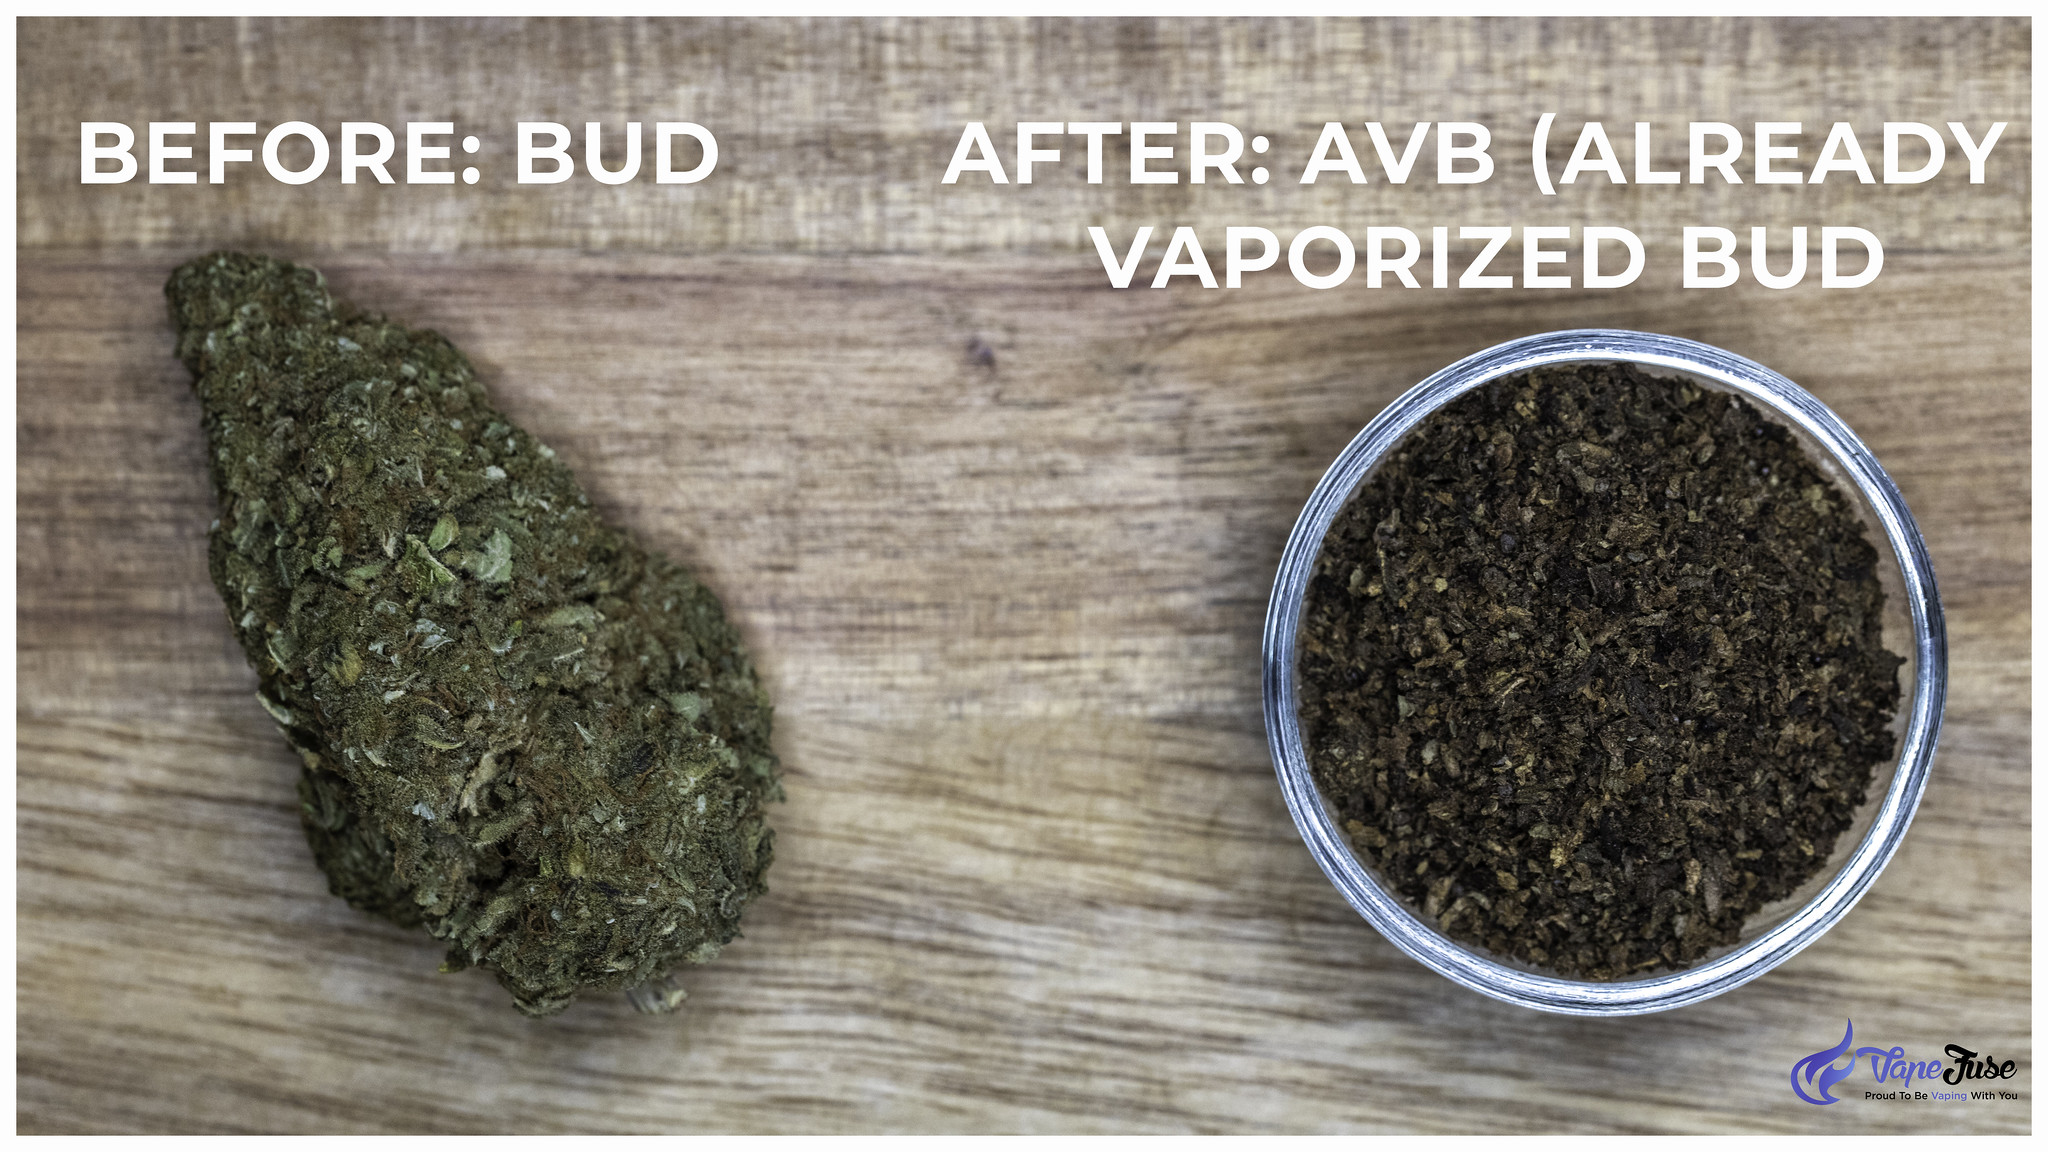 Bud before and after vaporization